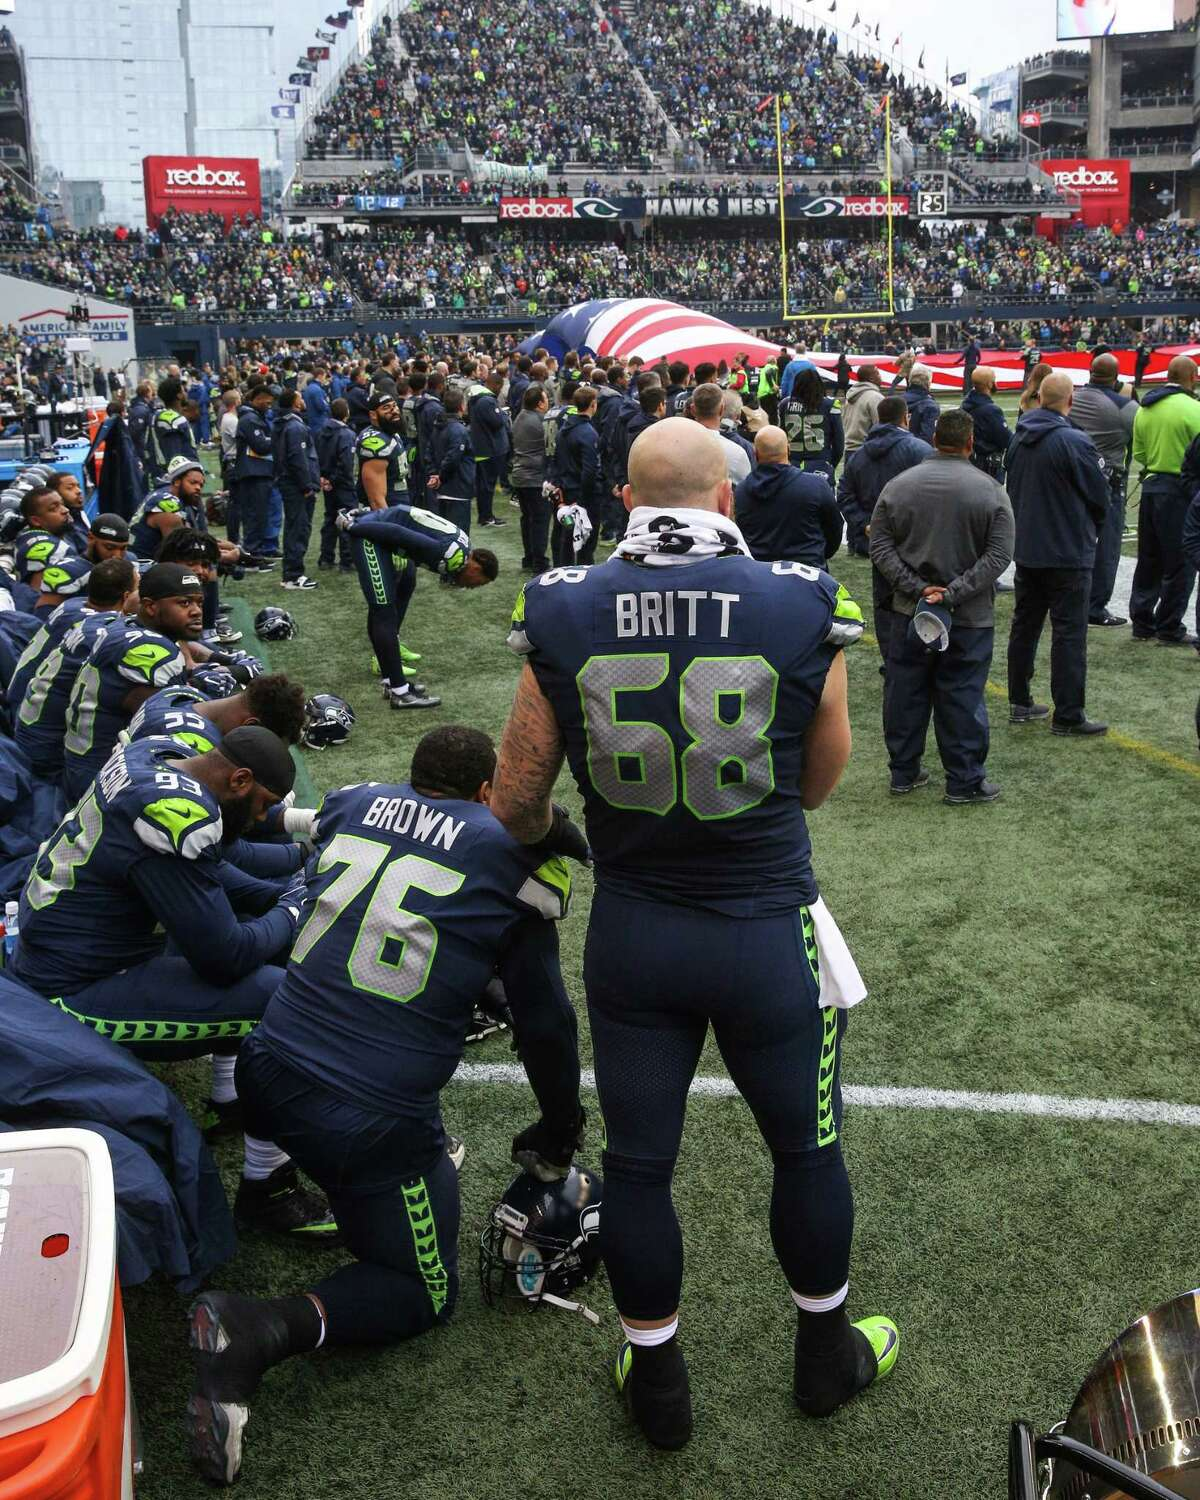 Seahawks offensive lineman Justin Britt stands with players kneeling in protest of police brutality and racial inequality during the national anthem before playing the Los Angeles Rams at CenturyLink Field on Sunday, Dec. 17, 2017.